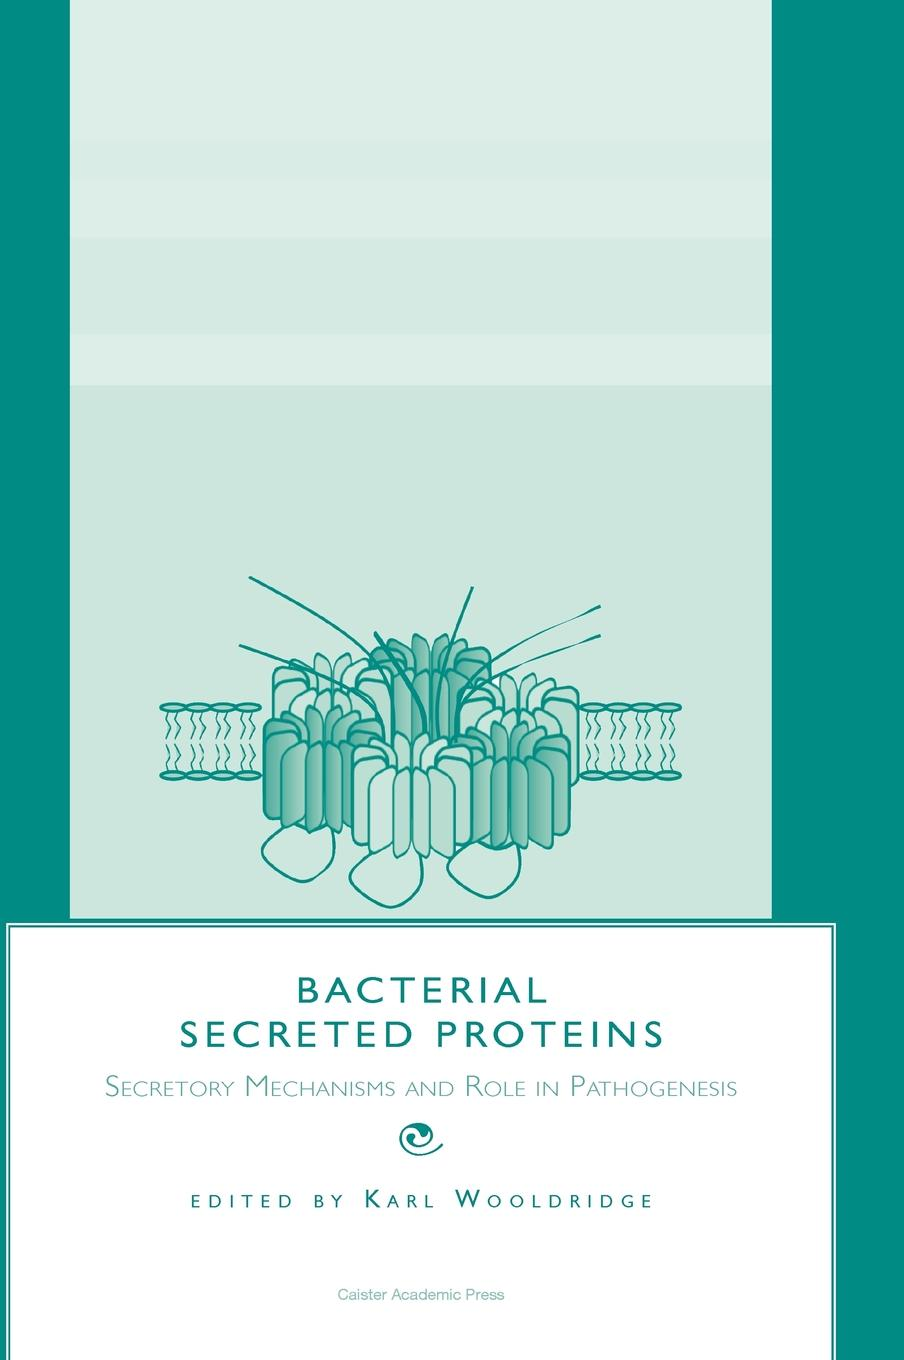 Bacterial Secreted Proteins book